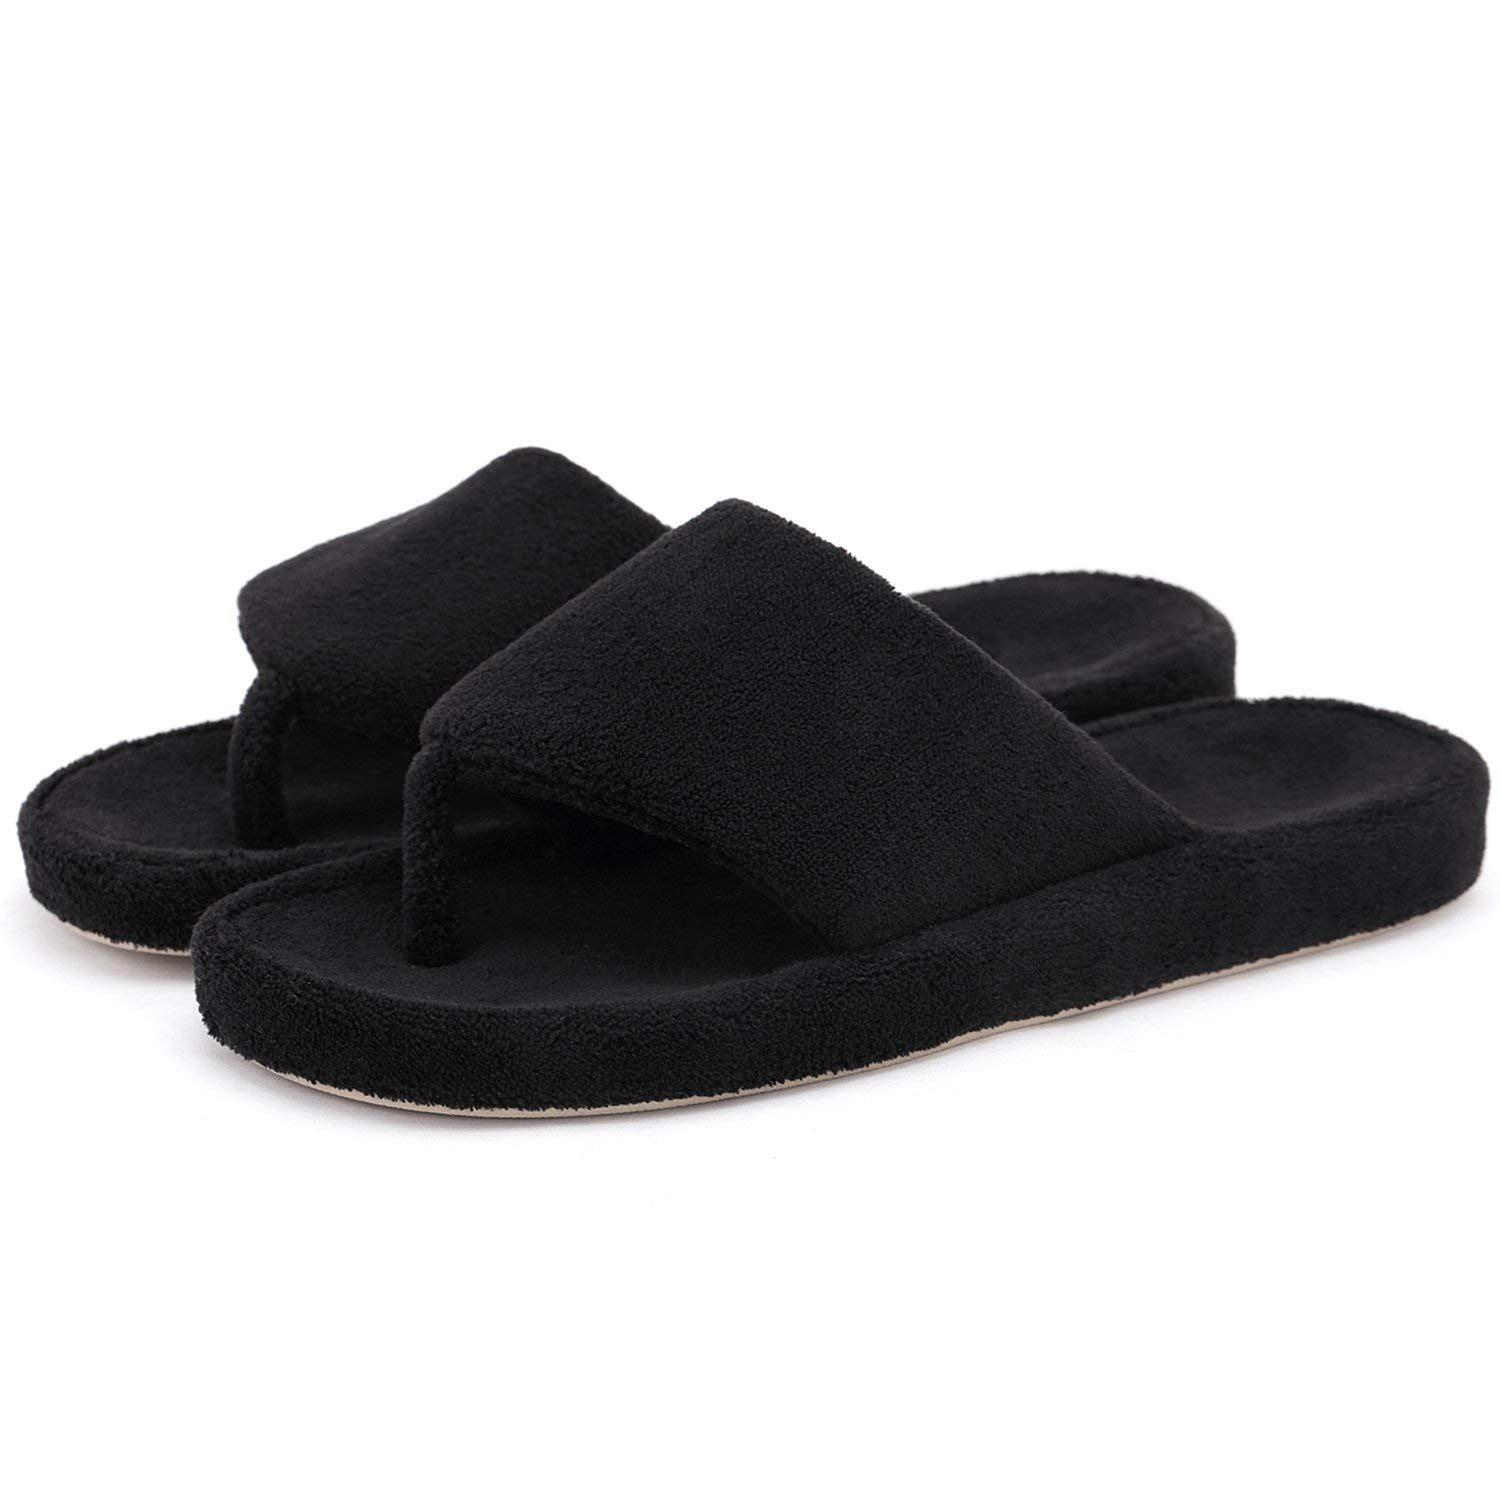 3d909516f Get Quotations · Onmygogo Women Coral Fleece House Slippers with Arch  Support